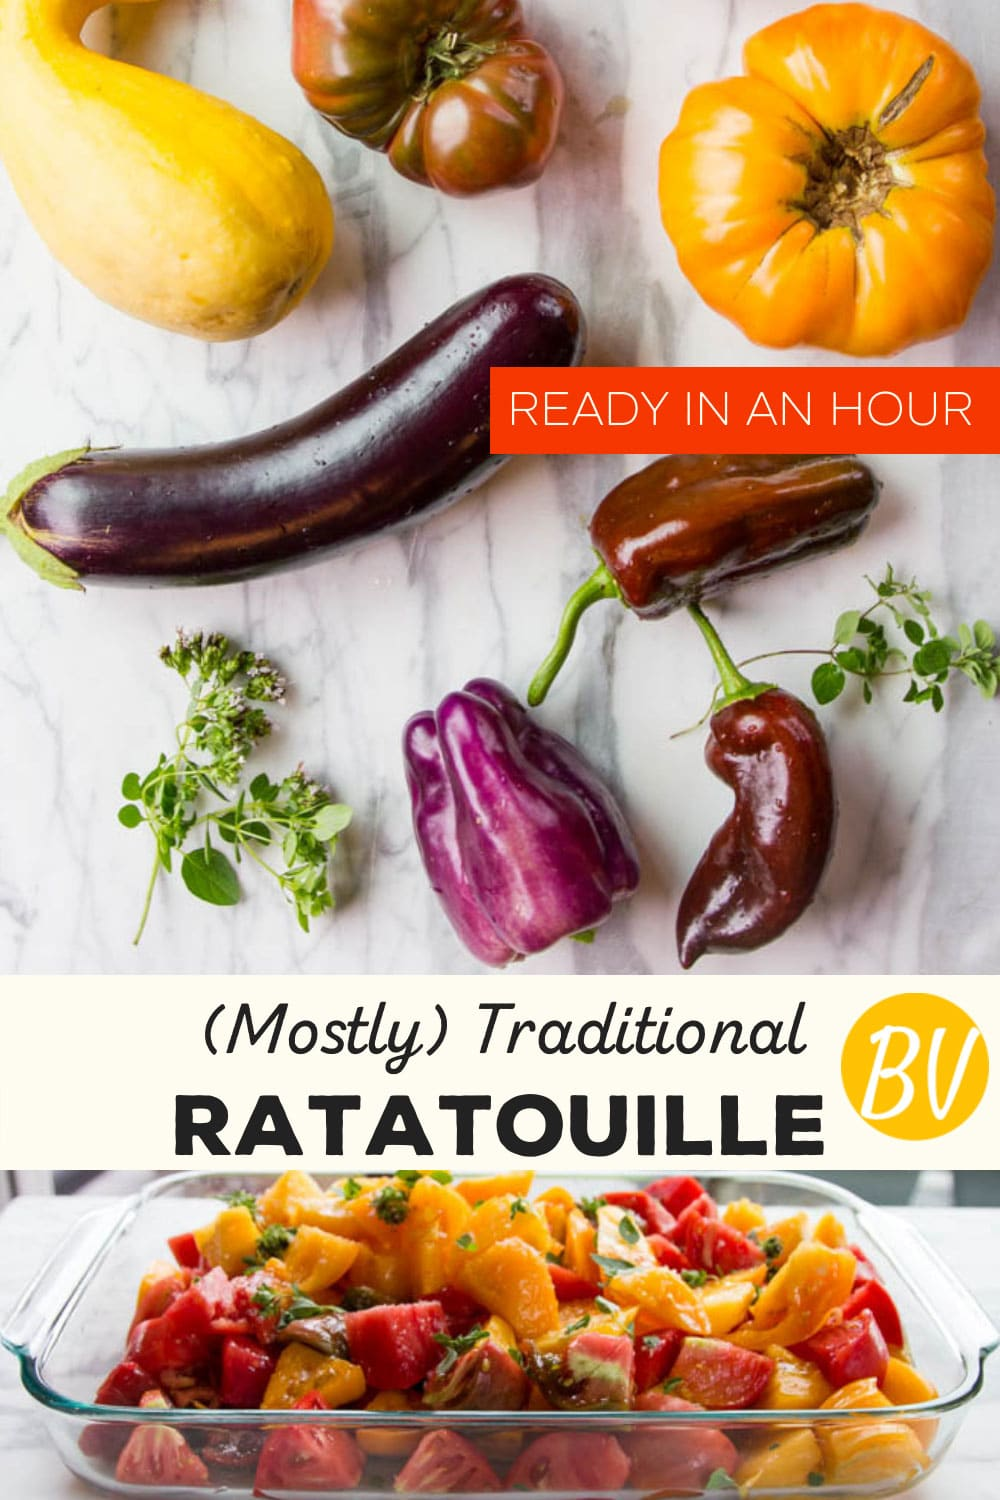 Mostly Traditional Ratatouille, Ready In An Hour